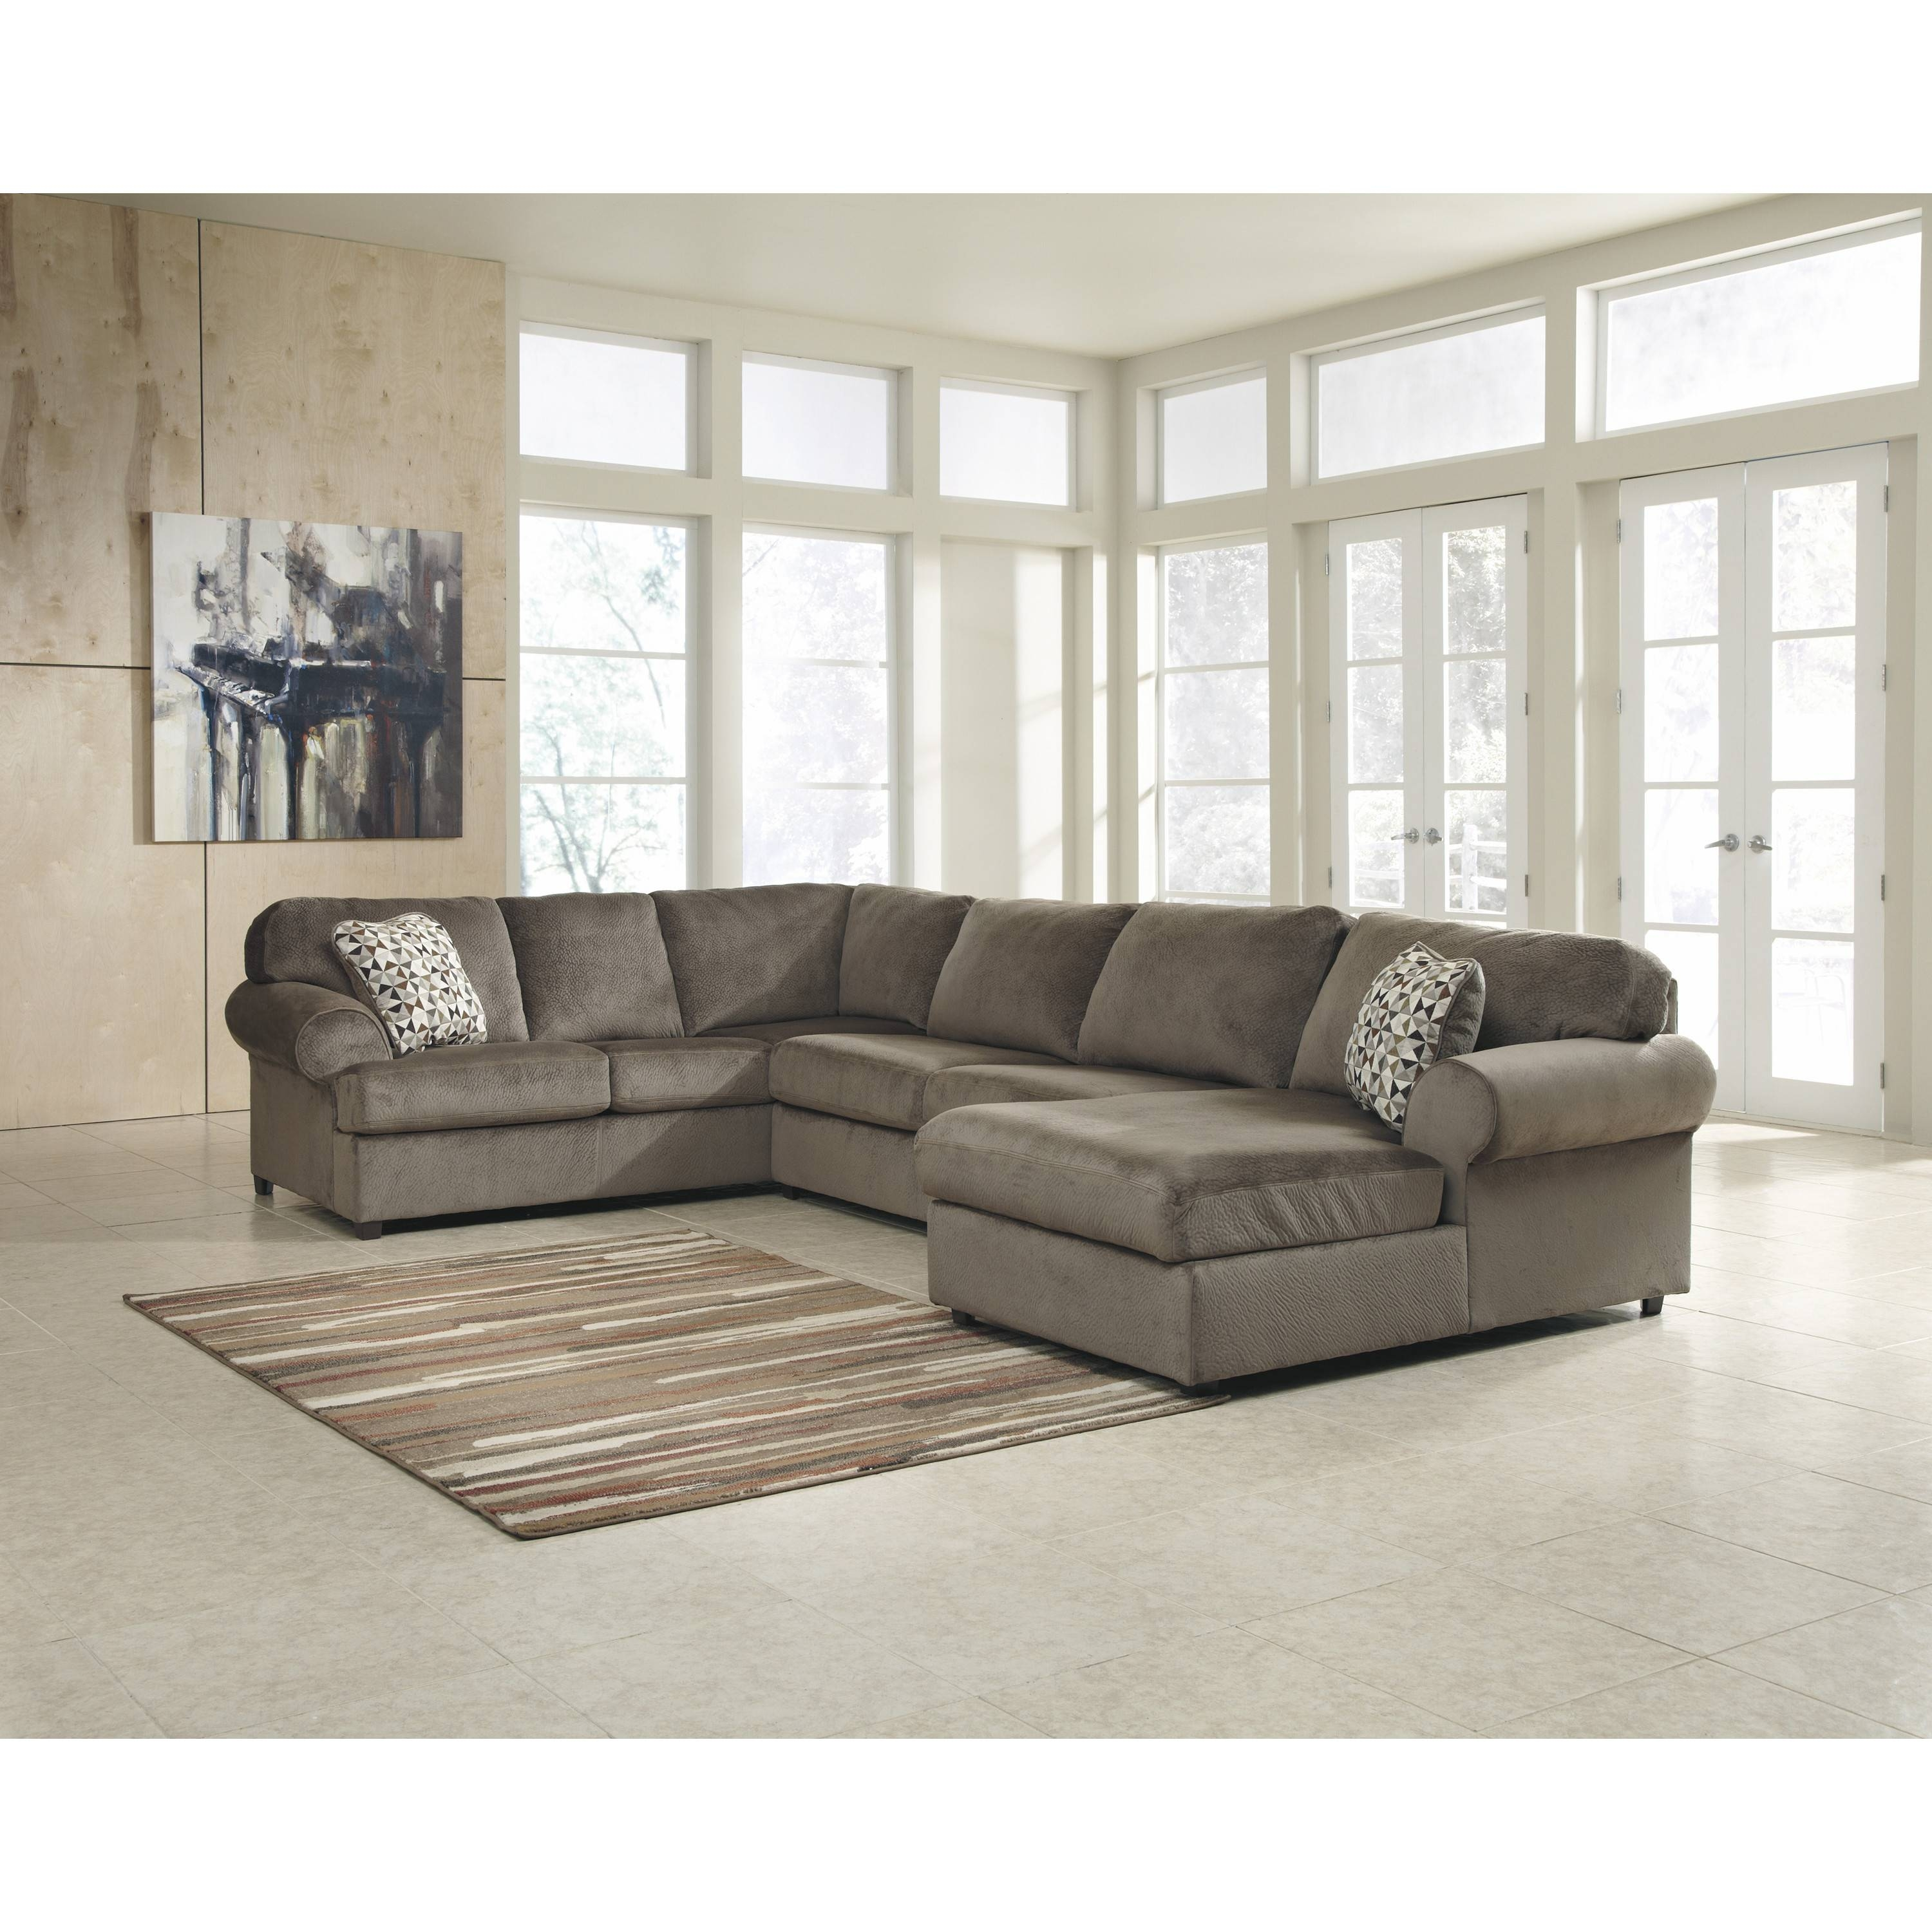 Long Sectional Sofa With Chaise - Cleanupflorida in Long Sectional Sofa With Chaise (Image 16 of 30)